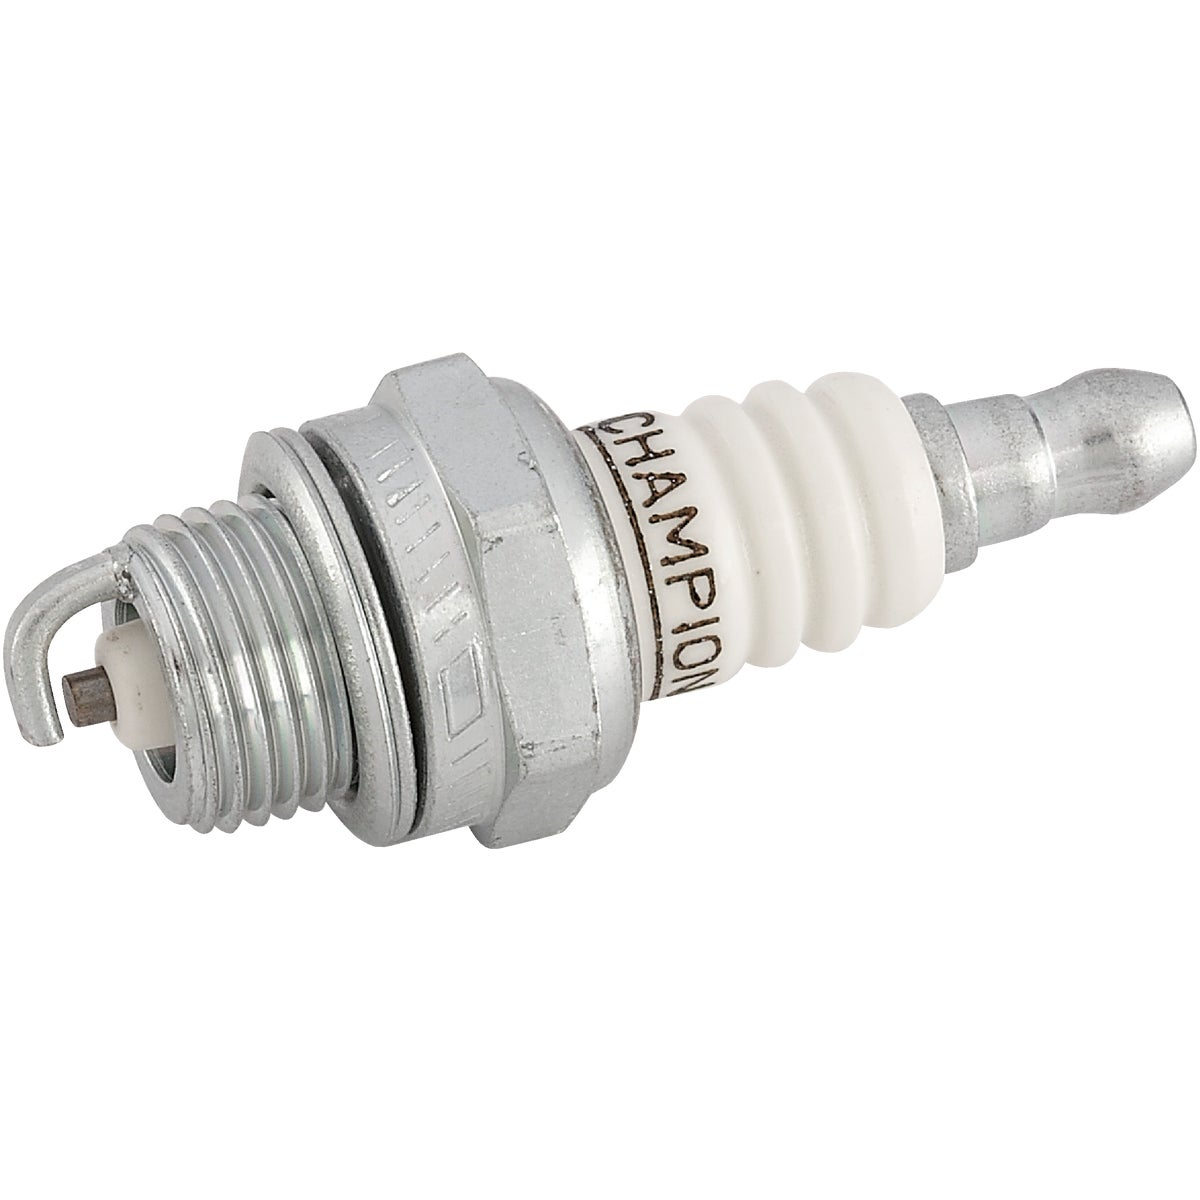 RCJ6Y SPARK PLUG - 852 by Federal Mogul